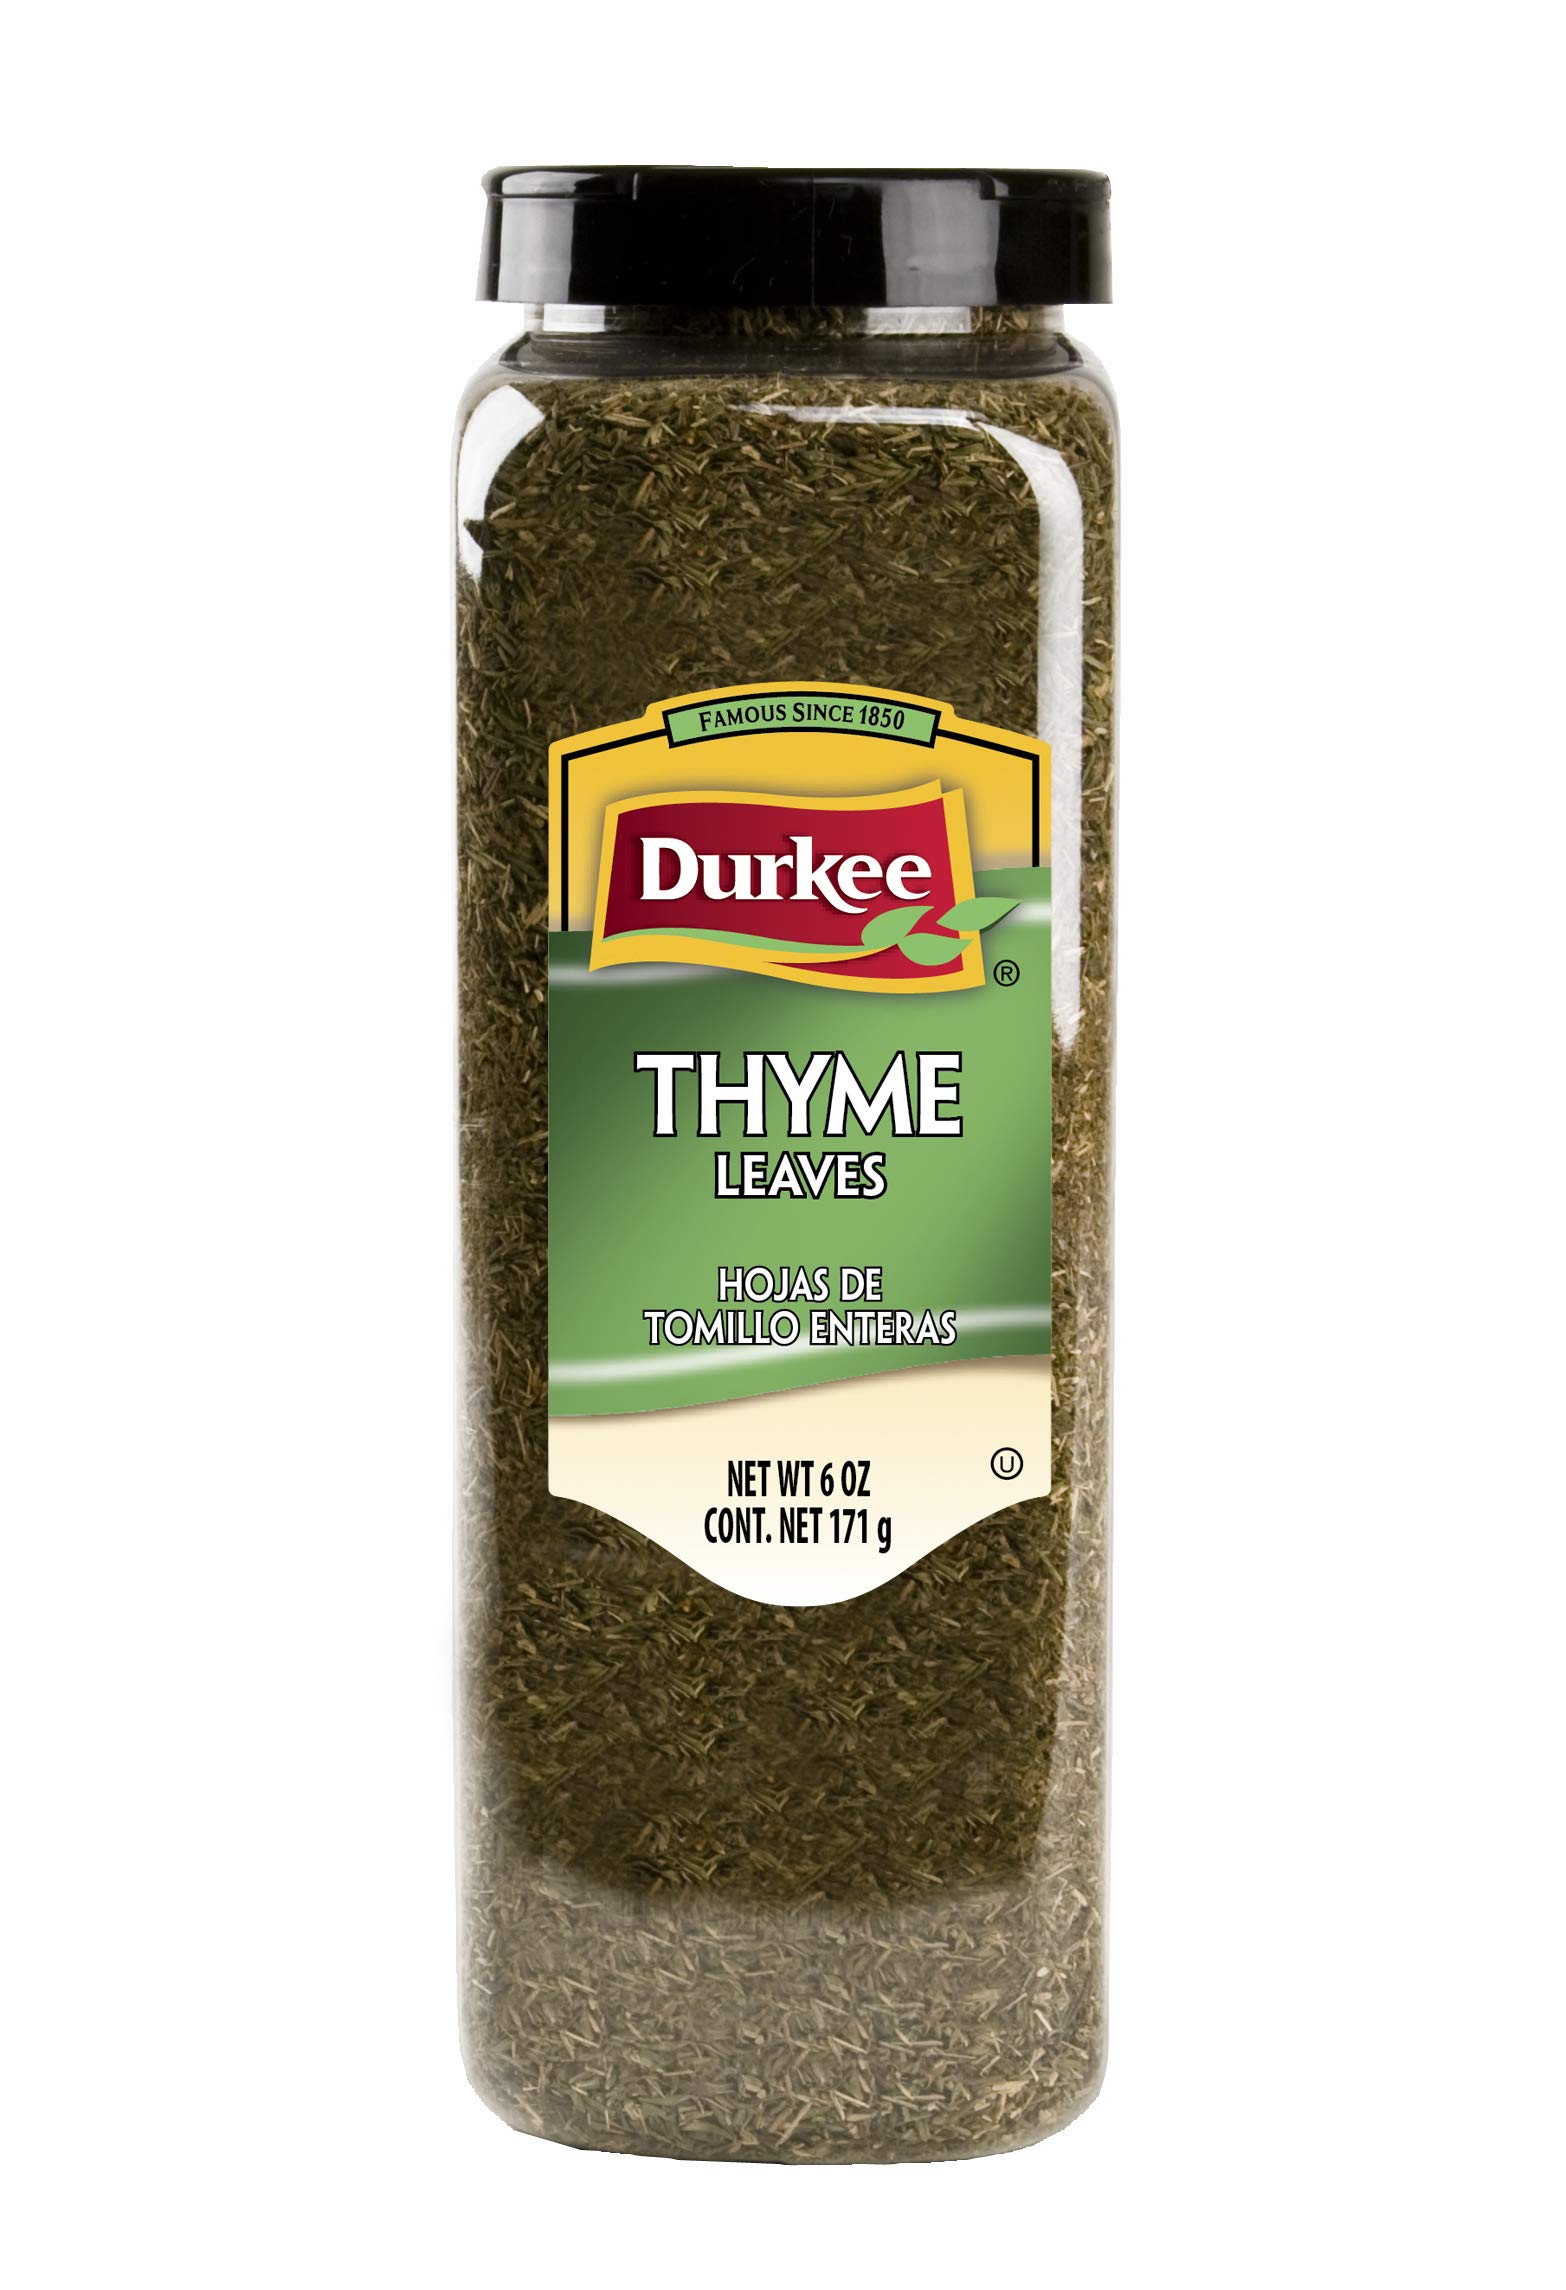 Durkee Thyme Leaves - 6 oz. container, 6 per case by Durkee